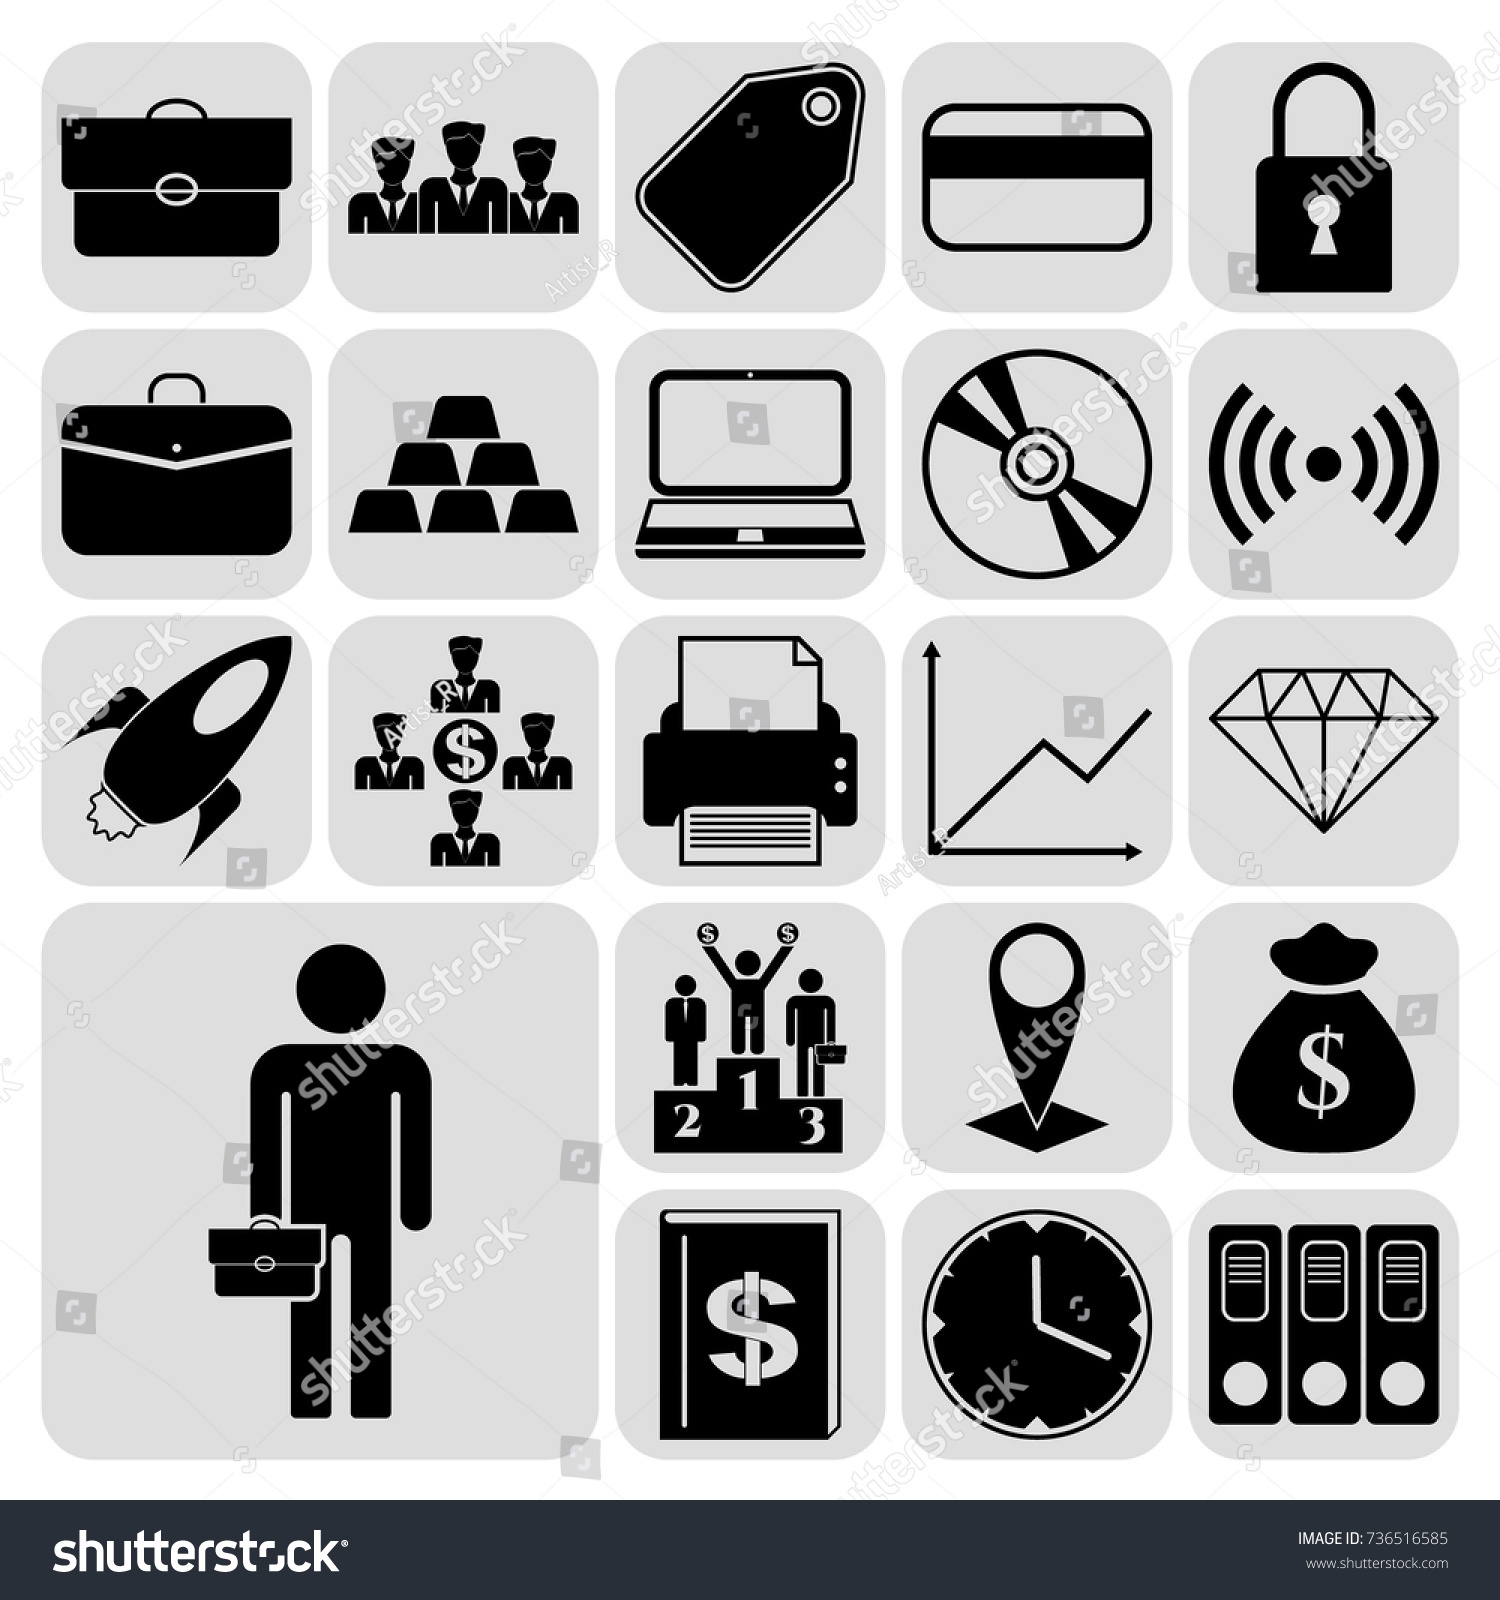 Set 22 Business Icons Symbols Pictograms Stock Vector 736516585